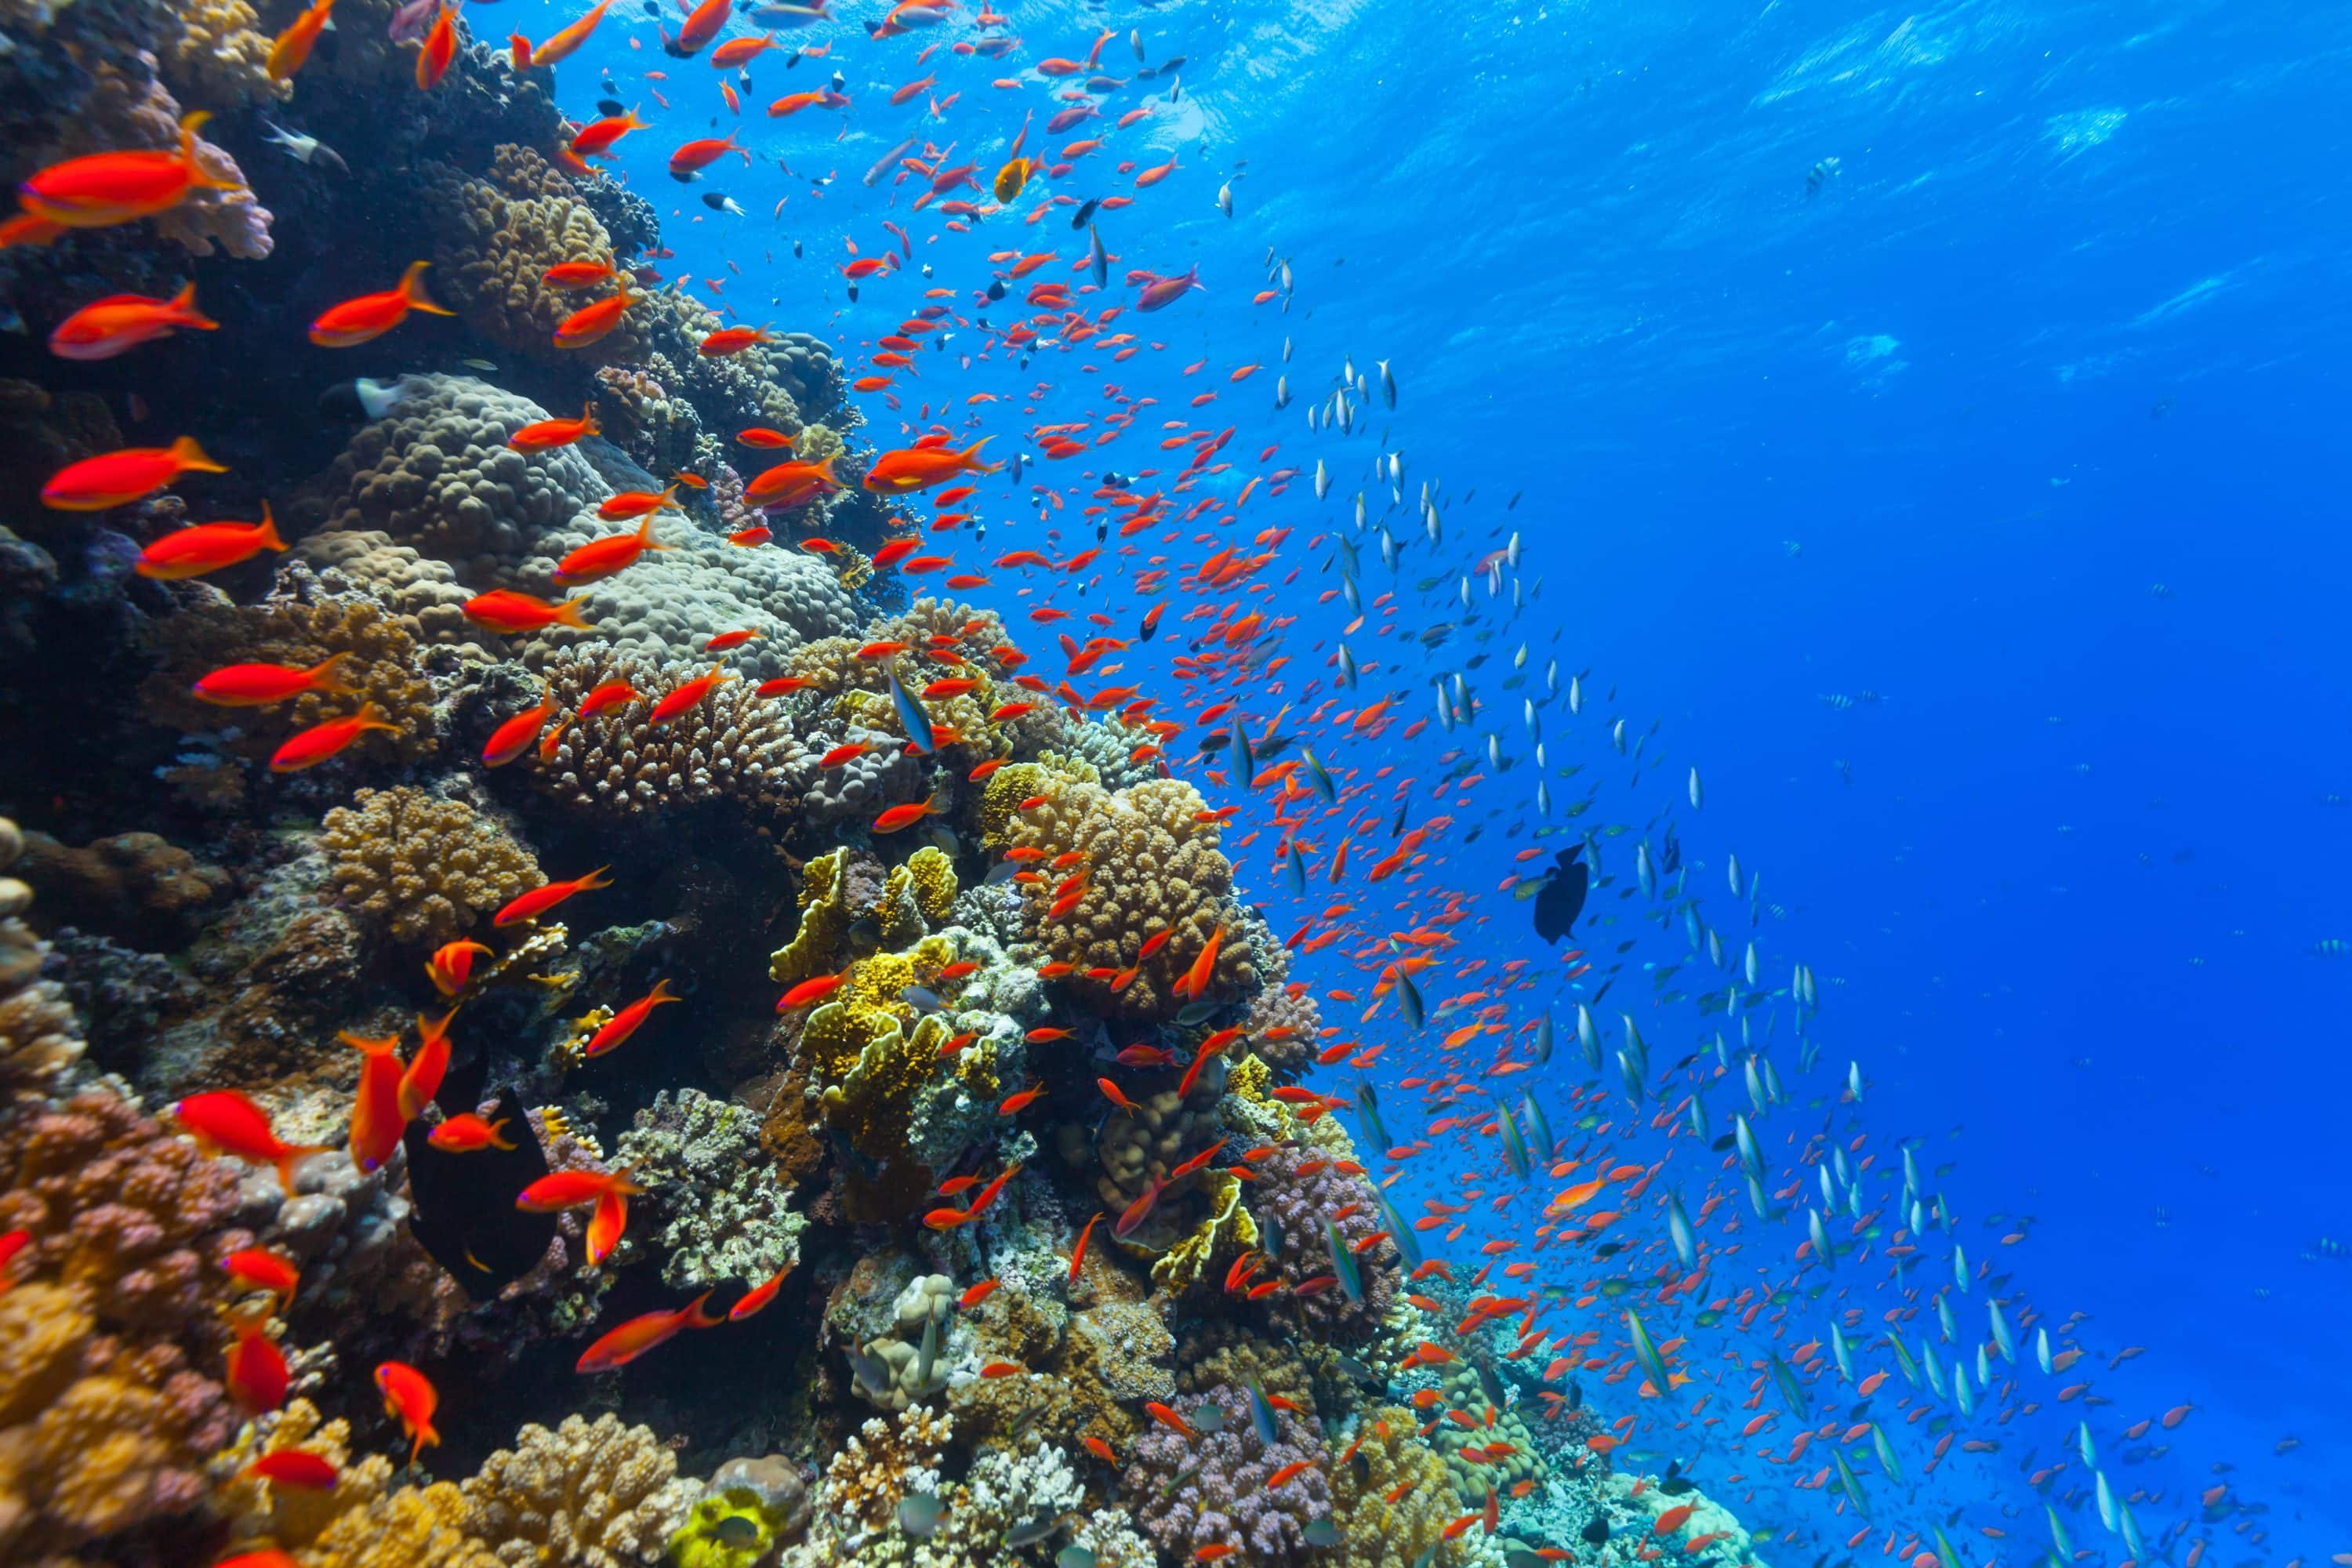 Brightly coloured reef and fish